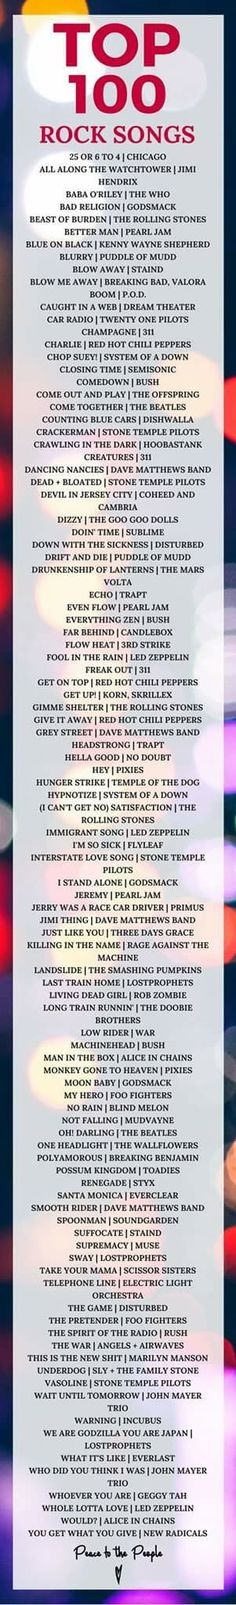 I wouldn't consider all of these as rock songs, and I don't like all of them.  But, there are a lot of good ones.